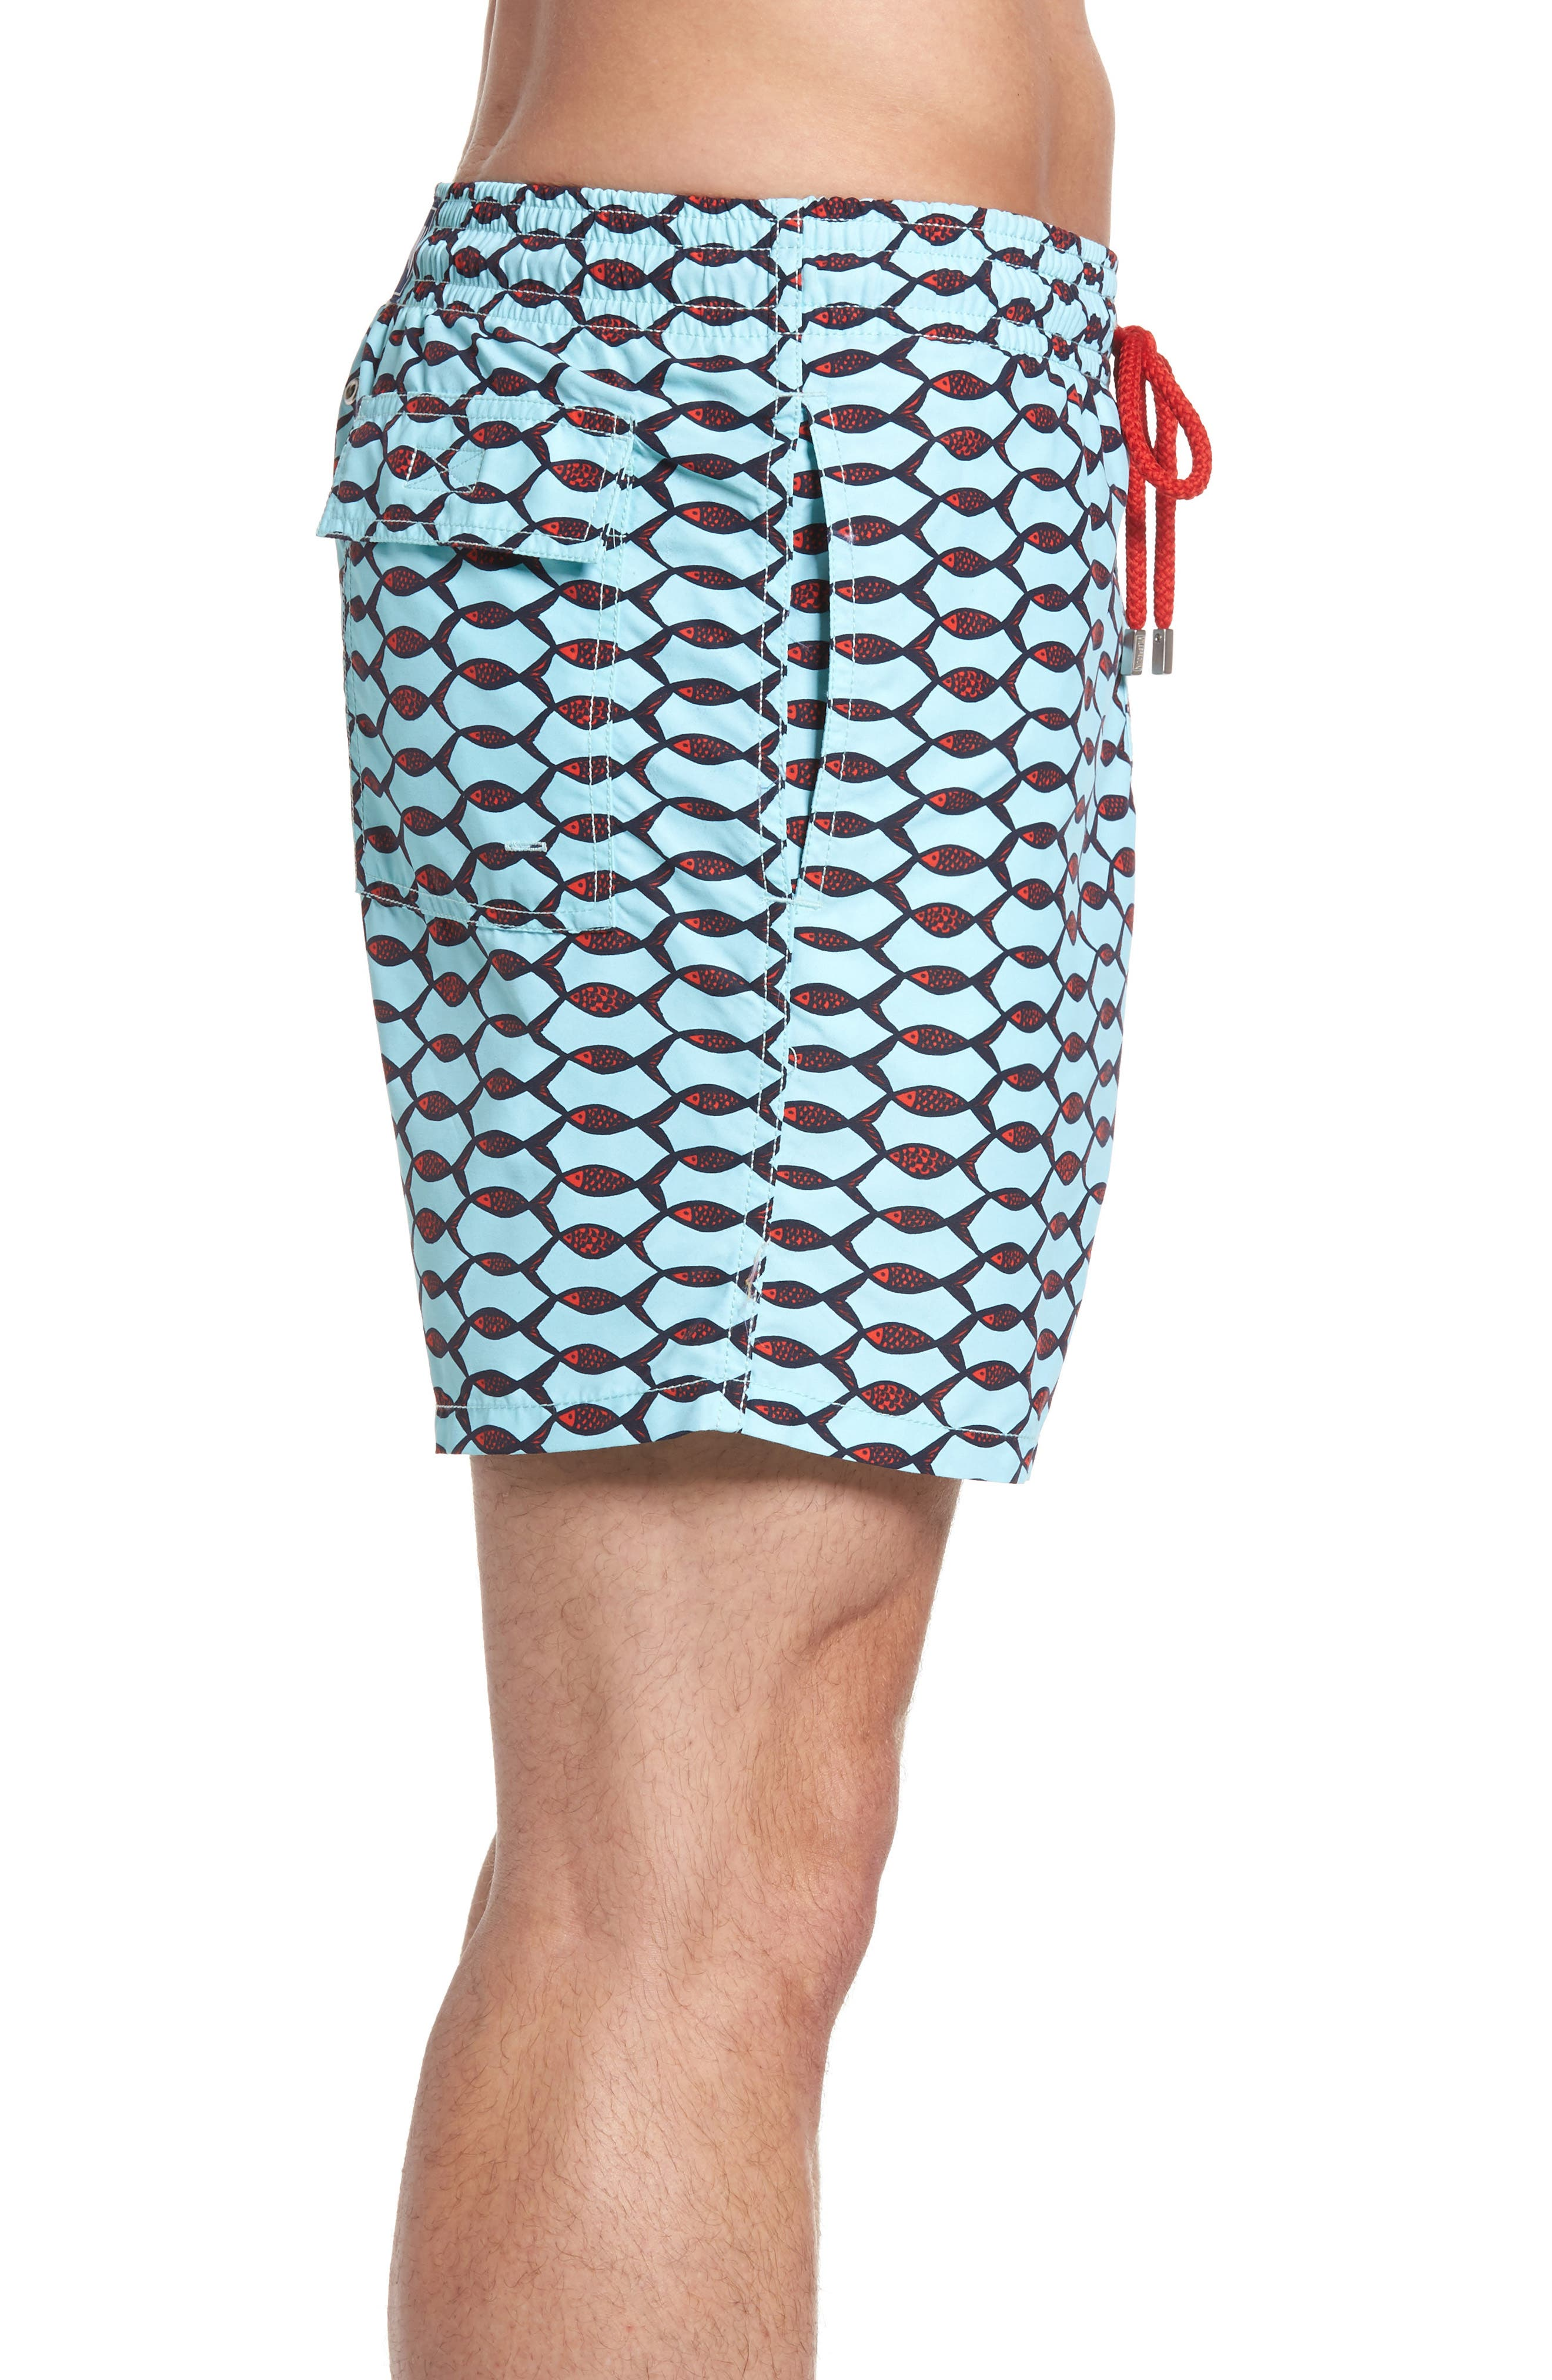 Moorea Fishnet Print Swim Trunks,                             Alternate thumbnail 3, color,                             FROSTED BLUE